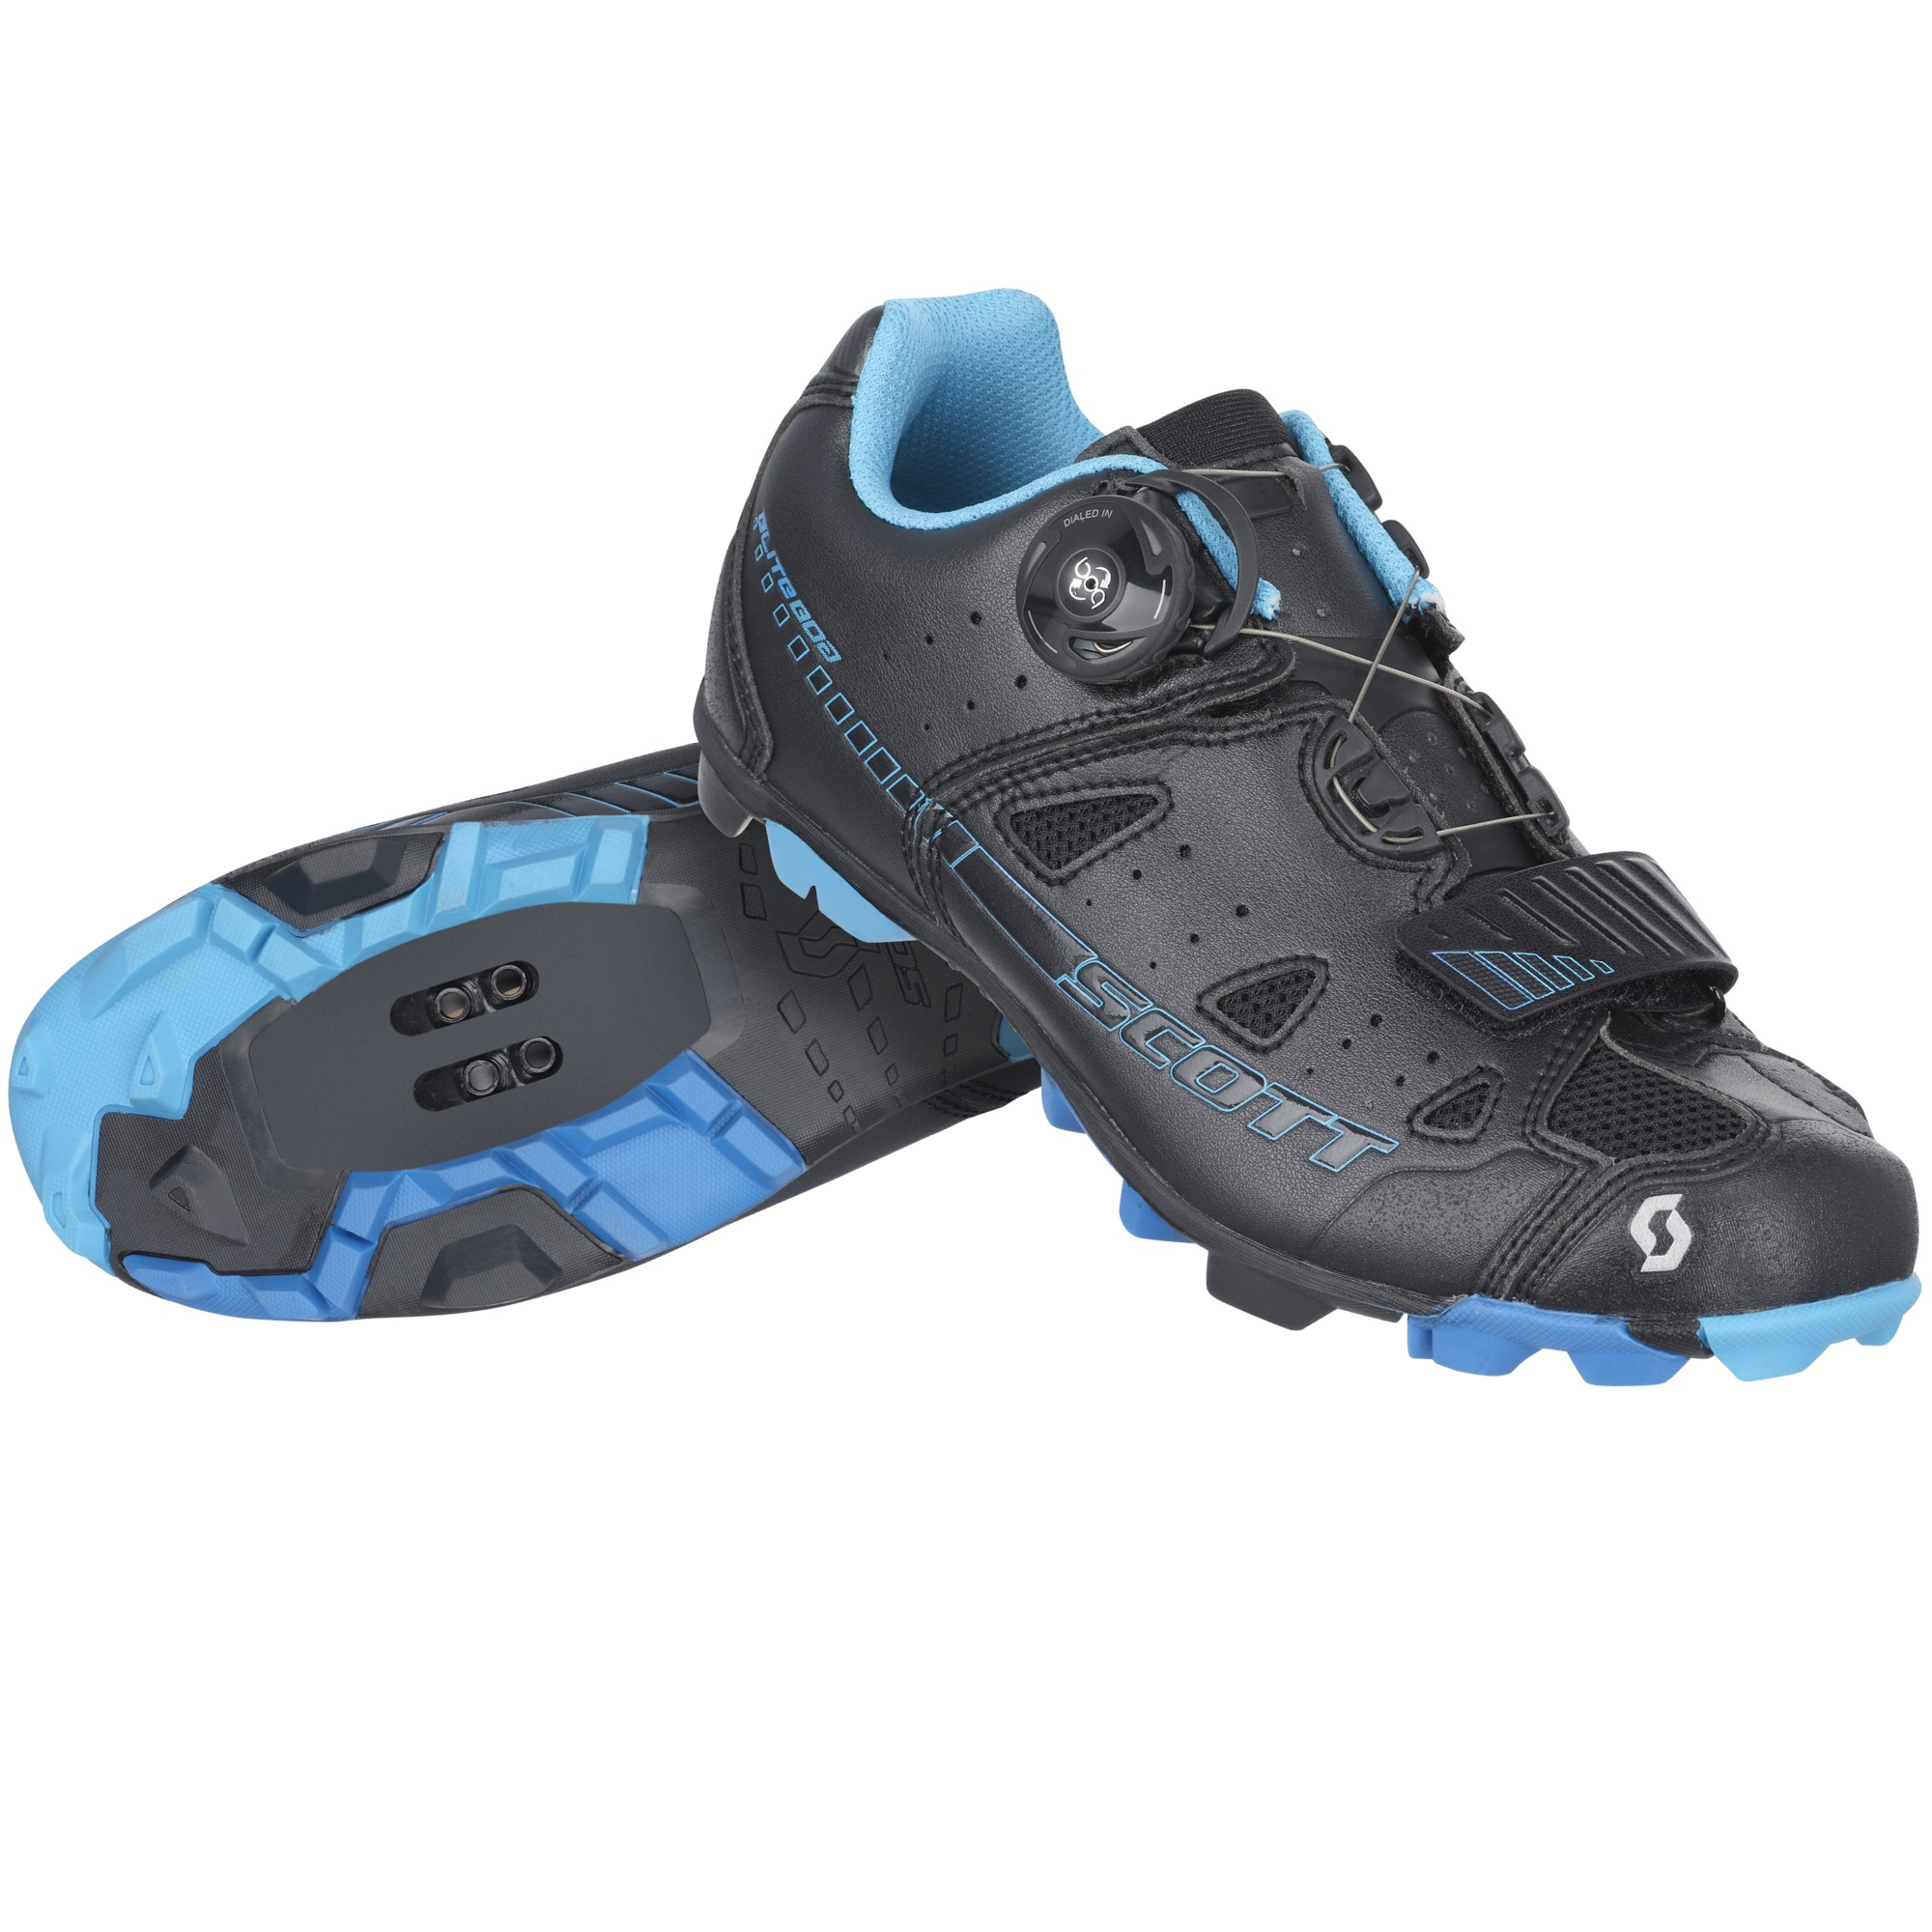 And  Mountain Bike Shoes On Ebay